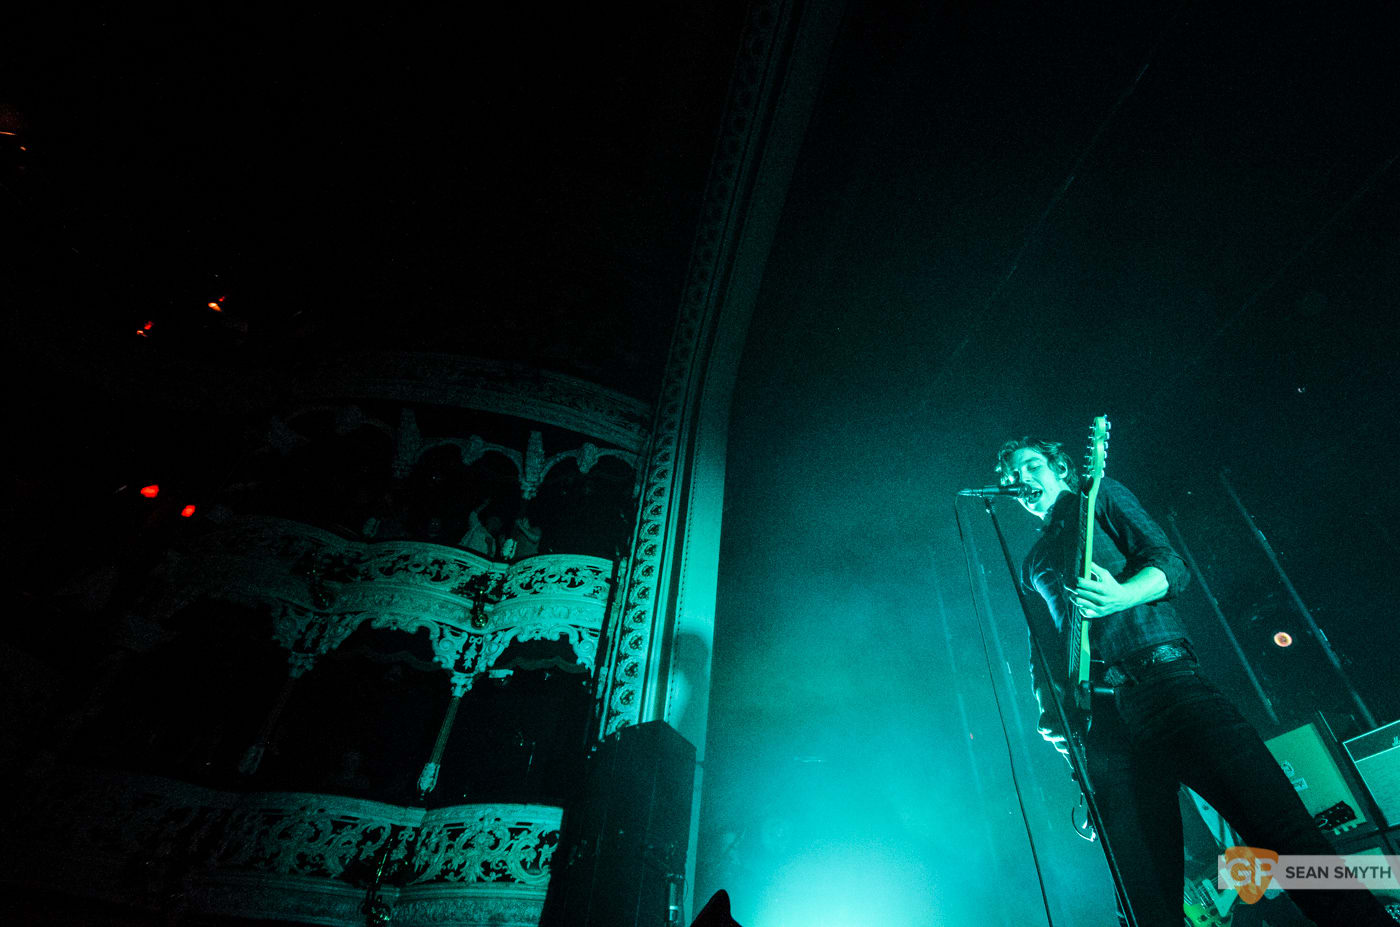 catfish-and-the-bottlemen-at-the-olympia-theatre-by-sean-smyth-20-11-16-12-of-27